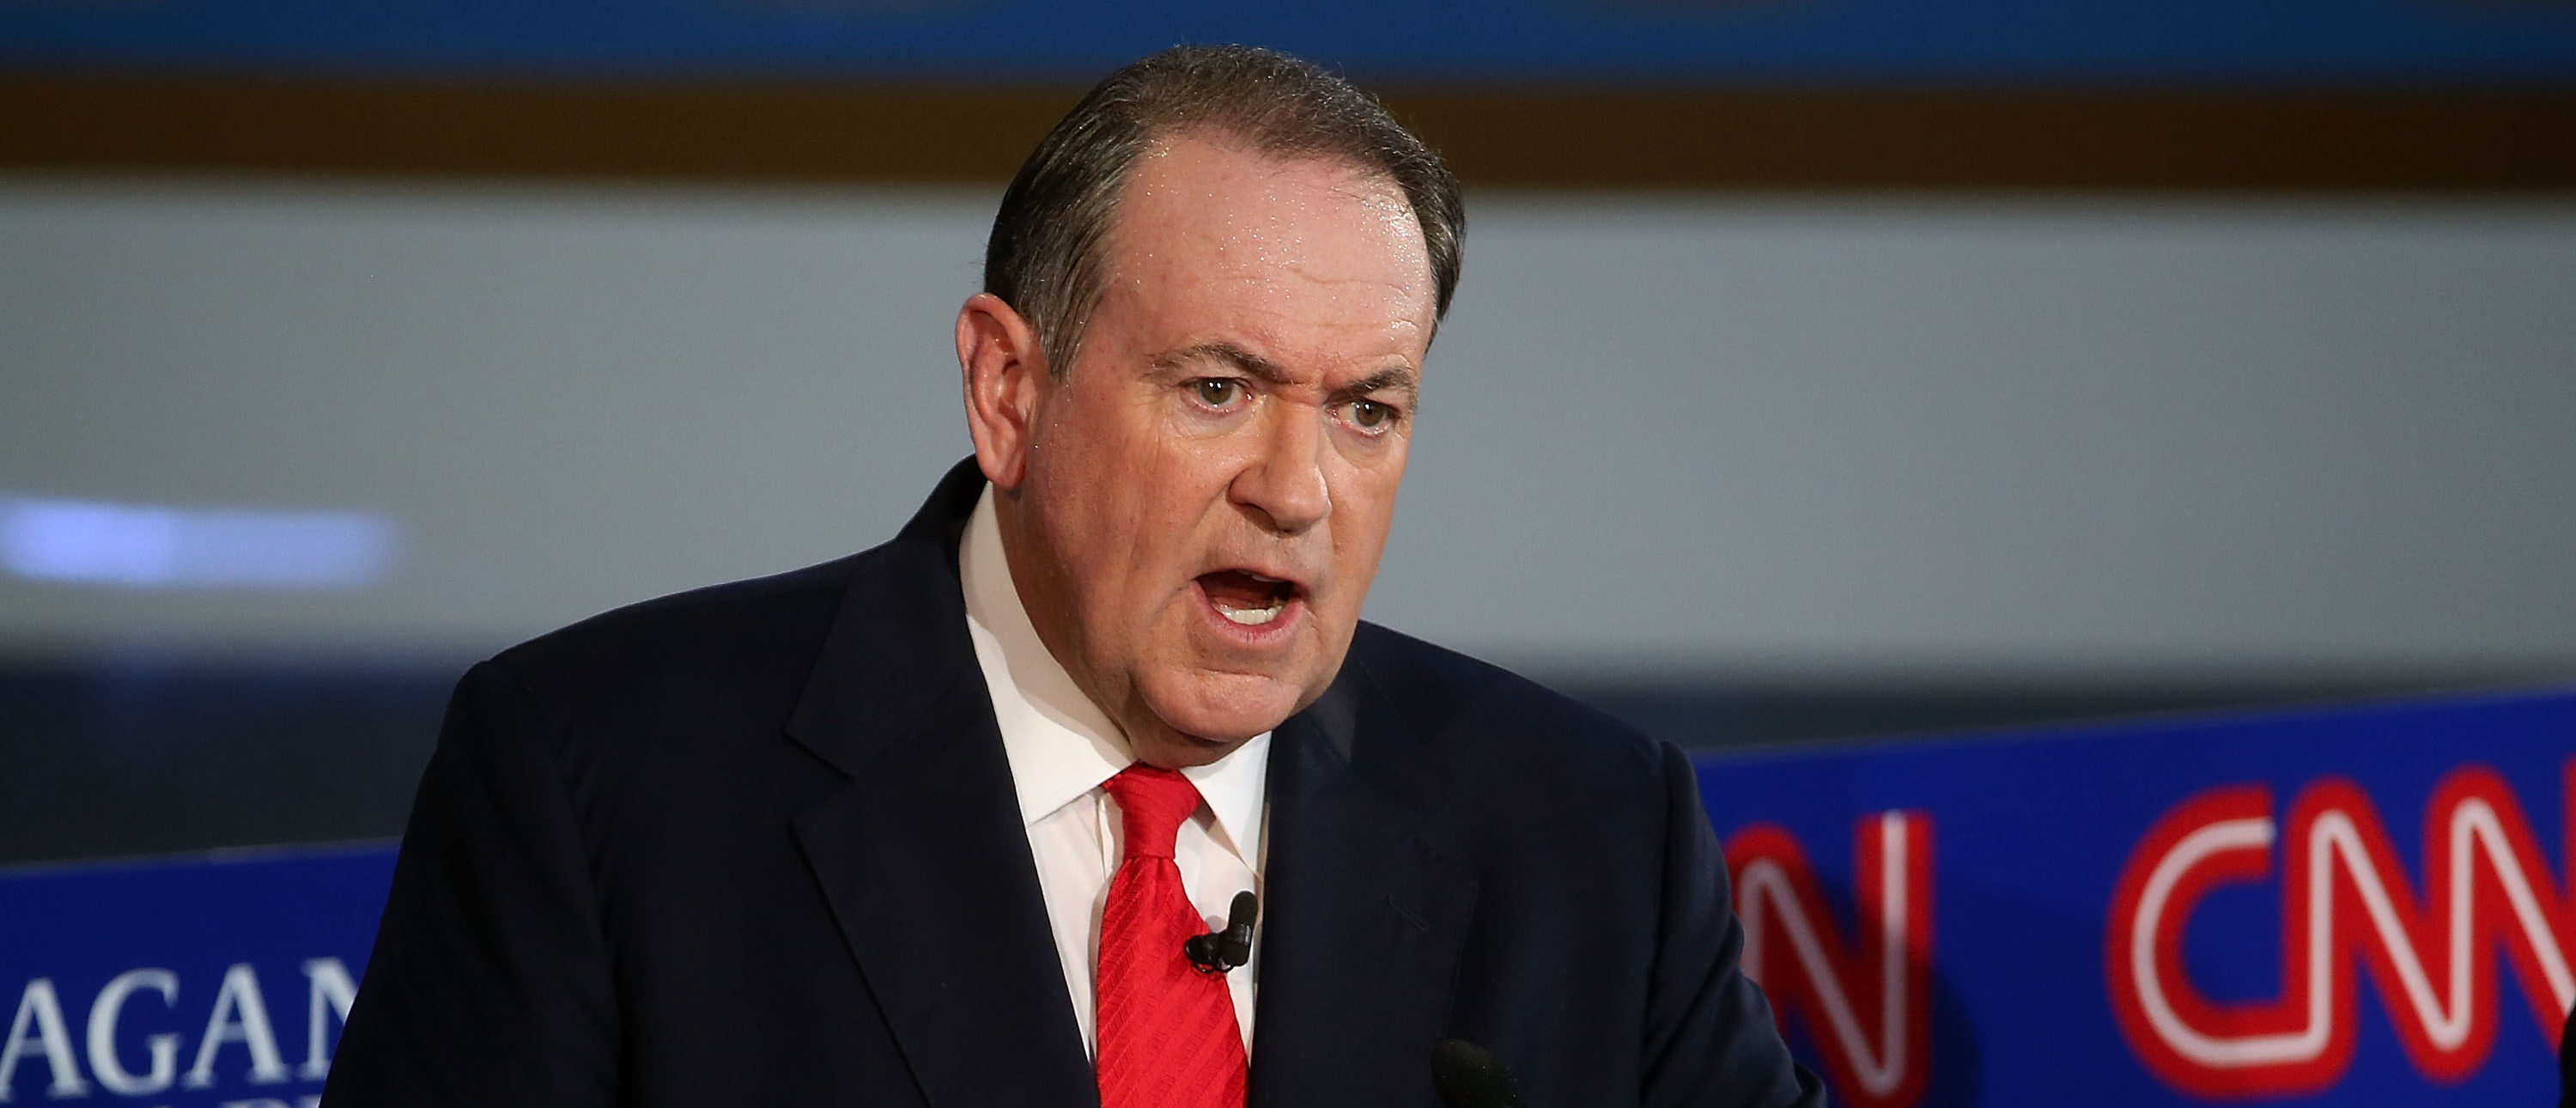 Republican Candidates Take Part In Debates At Reagan Library In Simi Valley Former governor and presidential candidate Mike Huckabeemade an interesting, and very controversial, point about sanctuary cities on Fox News Friday (Justin Sullivan/Getty Images)